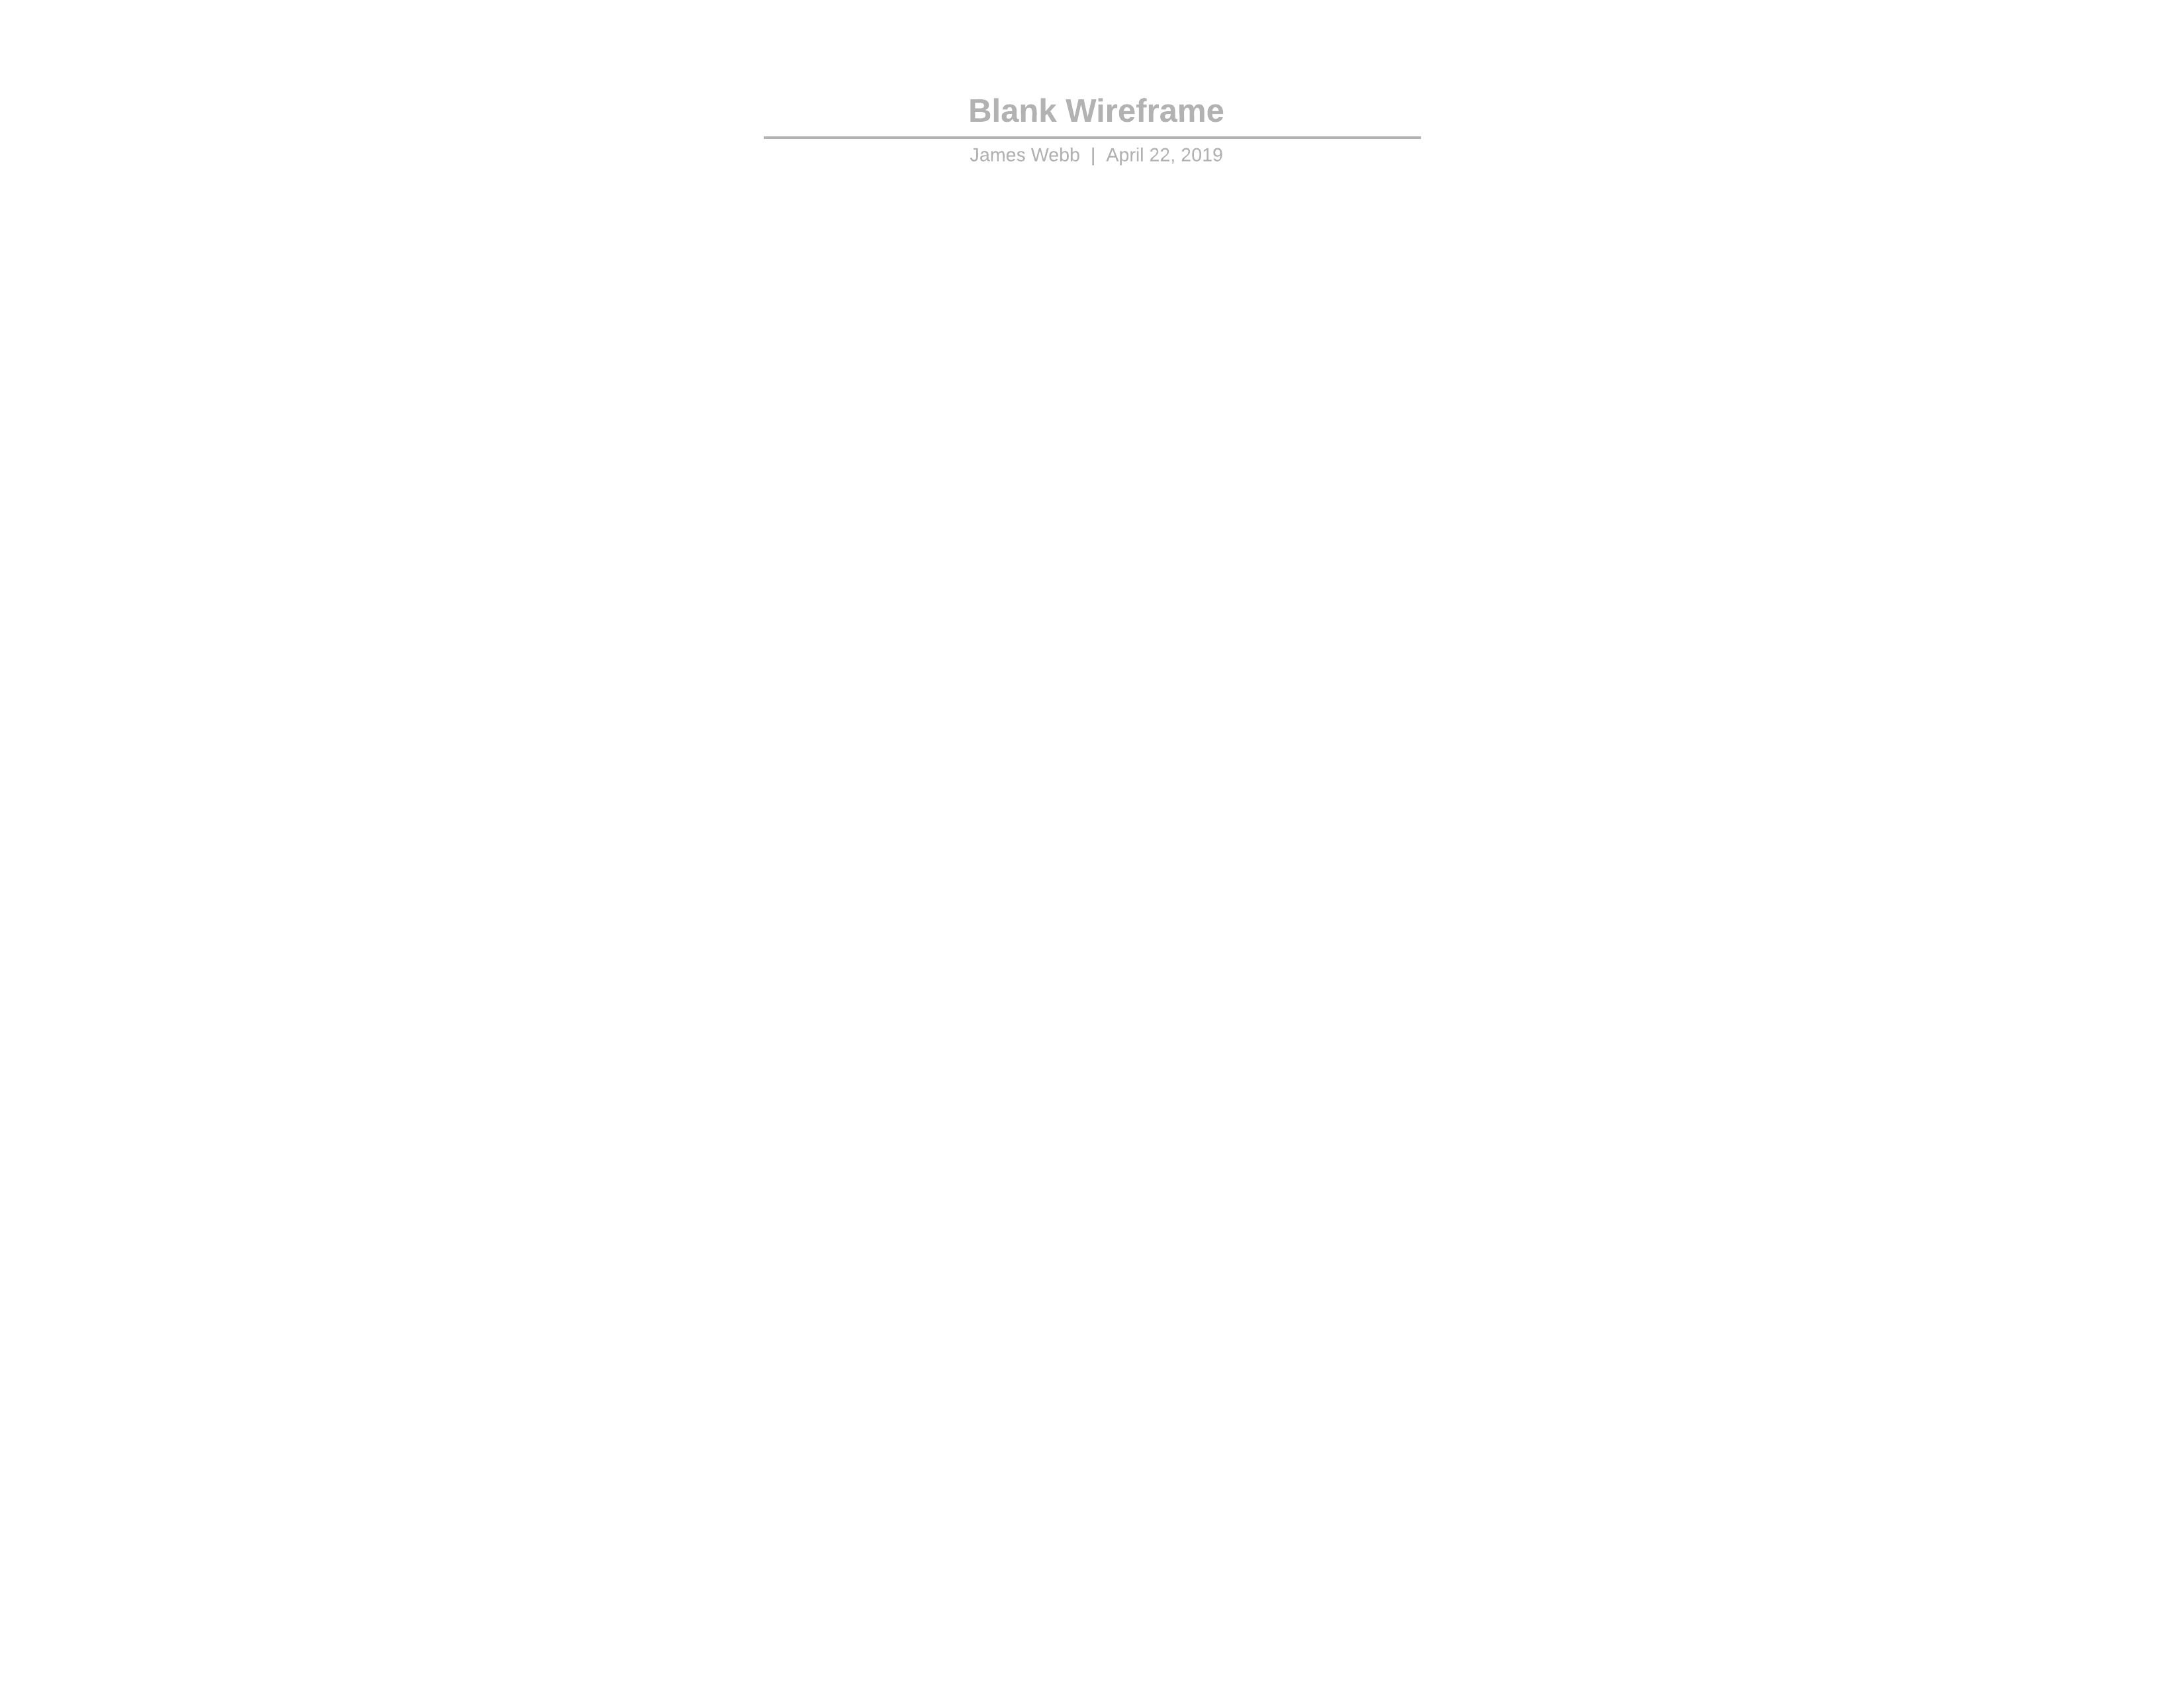 blank wireframe template